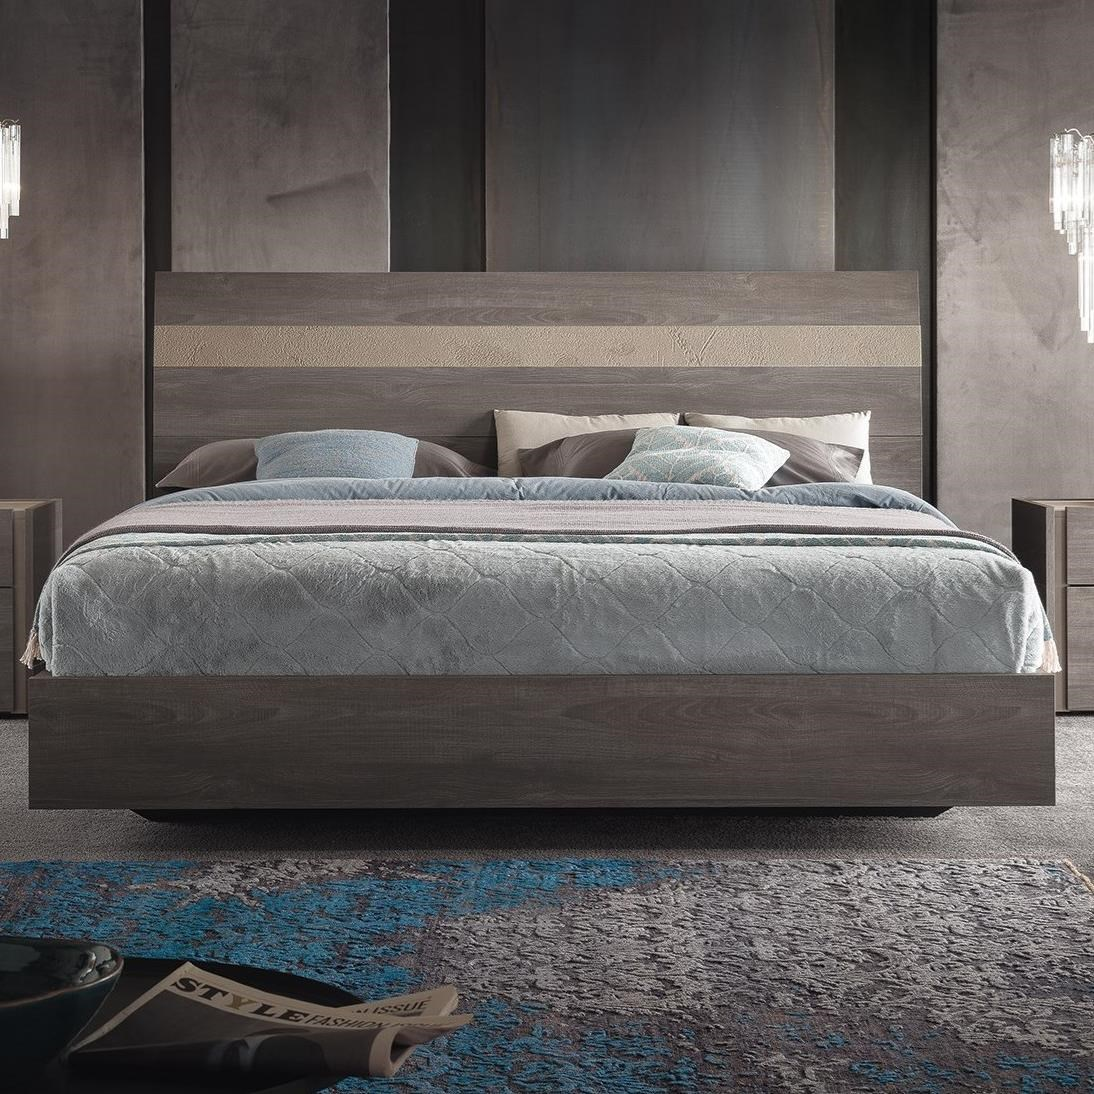 Alf Italia Nizza King Bed - Item Number: PJNI0191